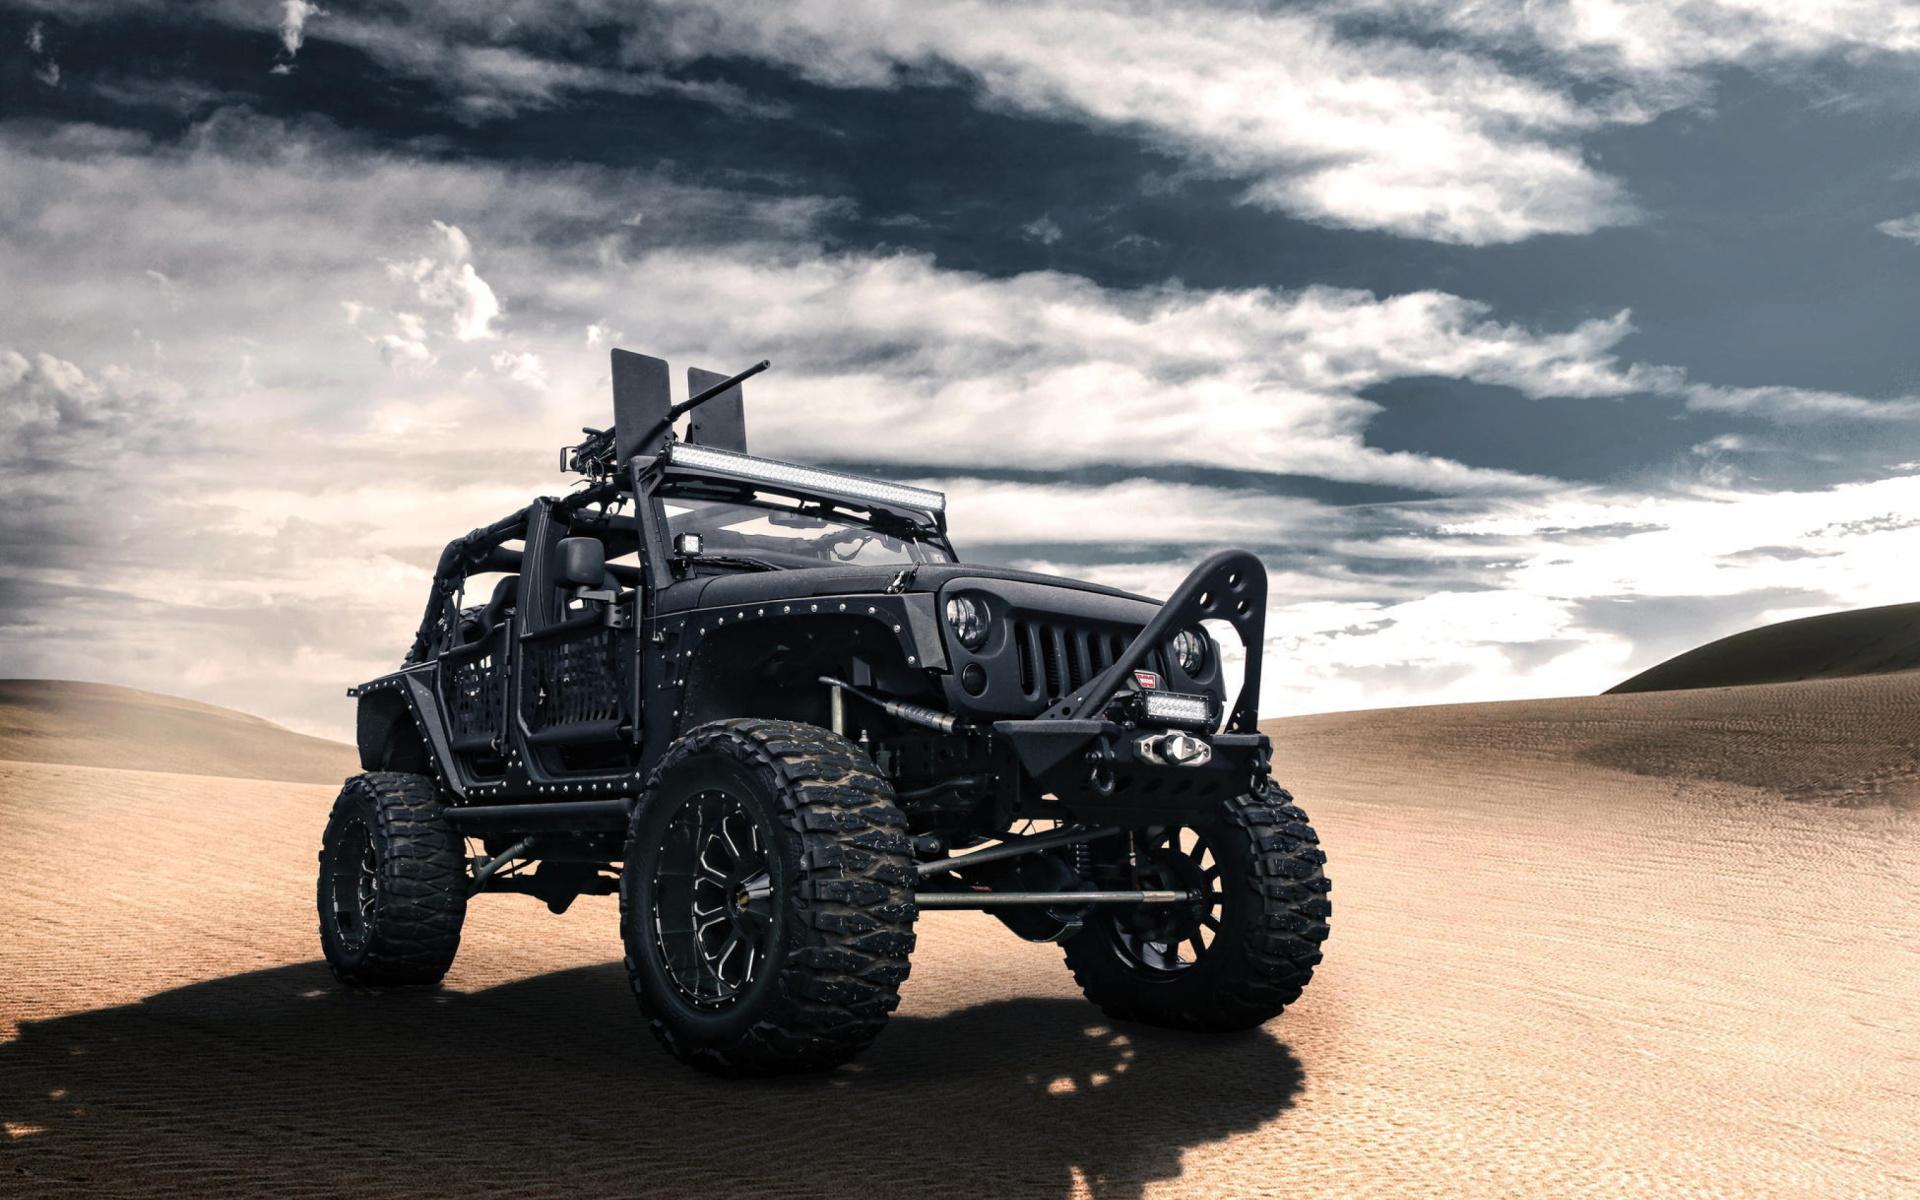 Lifted Black Jk >> Jeep Wrangler for Army Wallpaper for Widescreen Desktop PC 1920x1080 Full HD